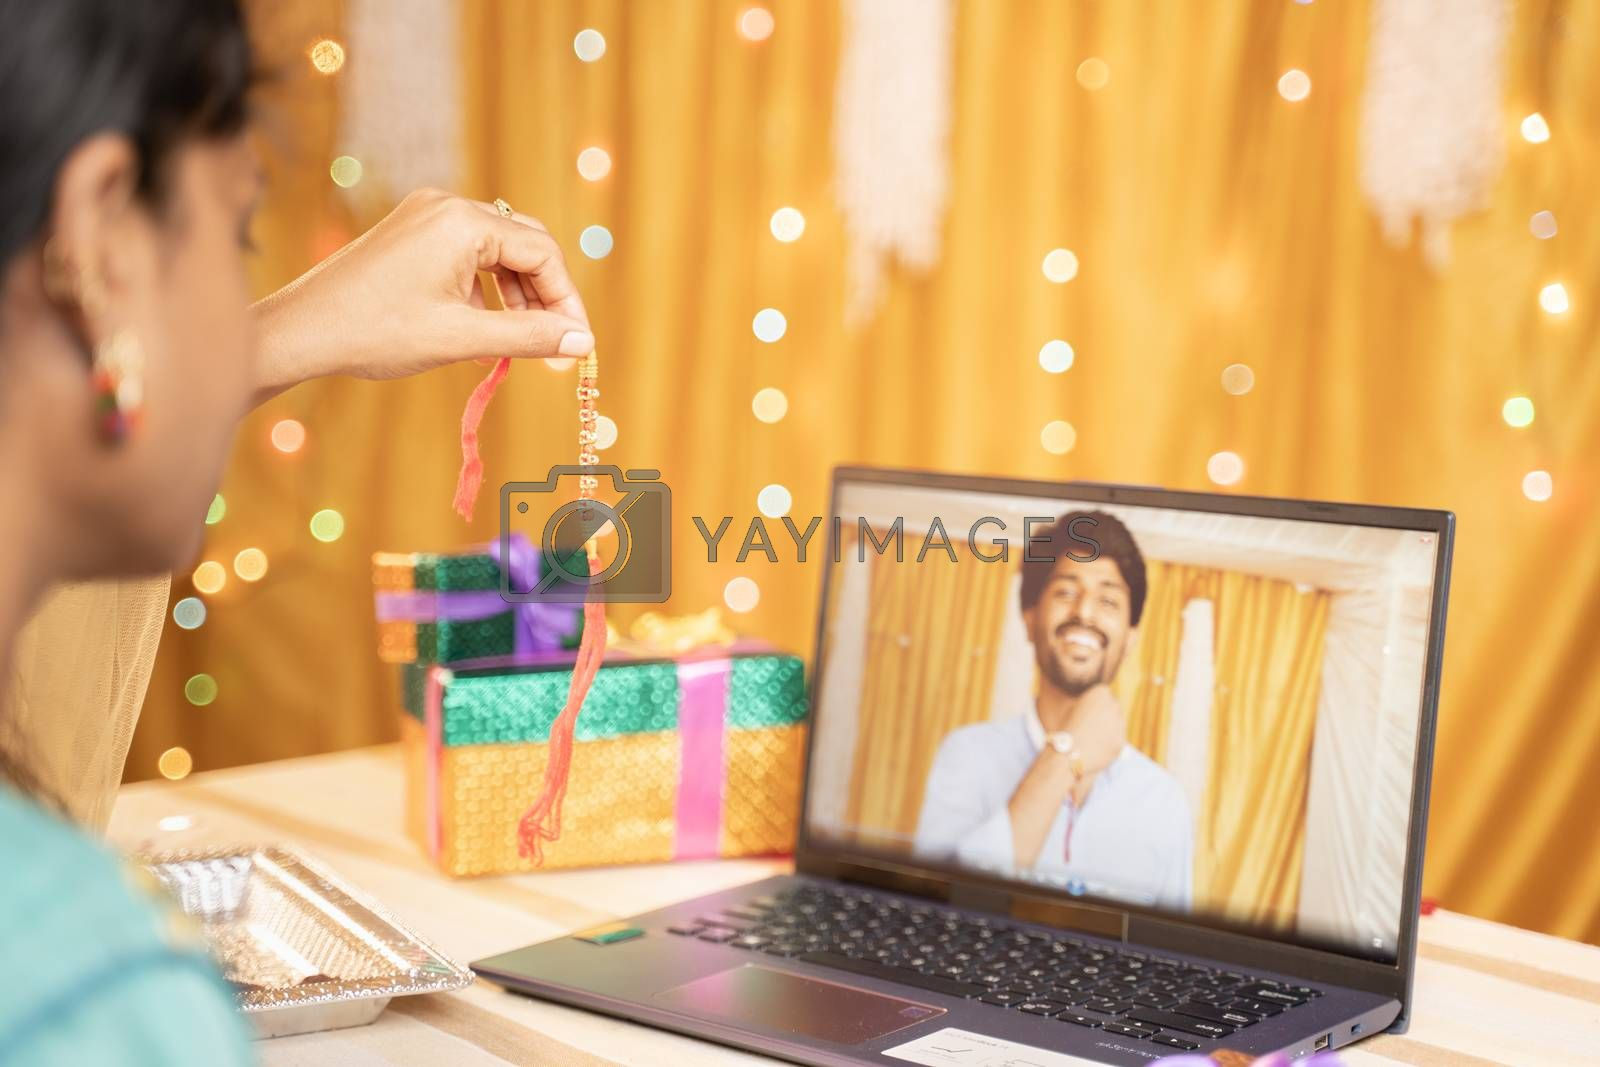 shoulder view of sister video calling her brother to tie rakhi or Raksha Bandhan during festival and showing gift received - Concept of far Rakshabandhan celebration by using technology and internet